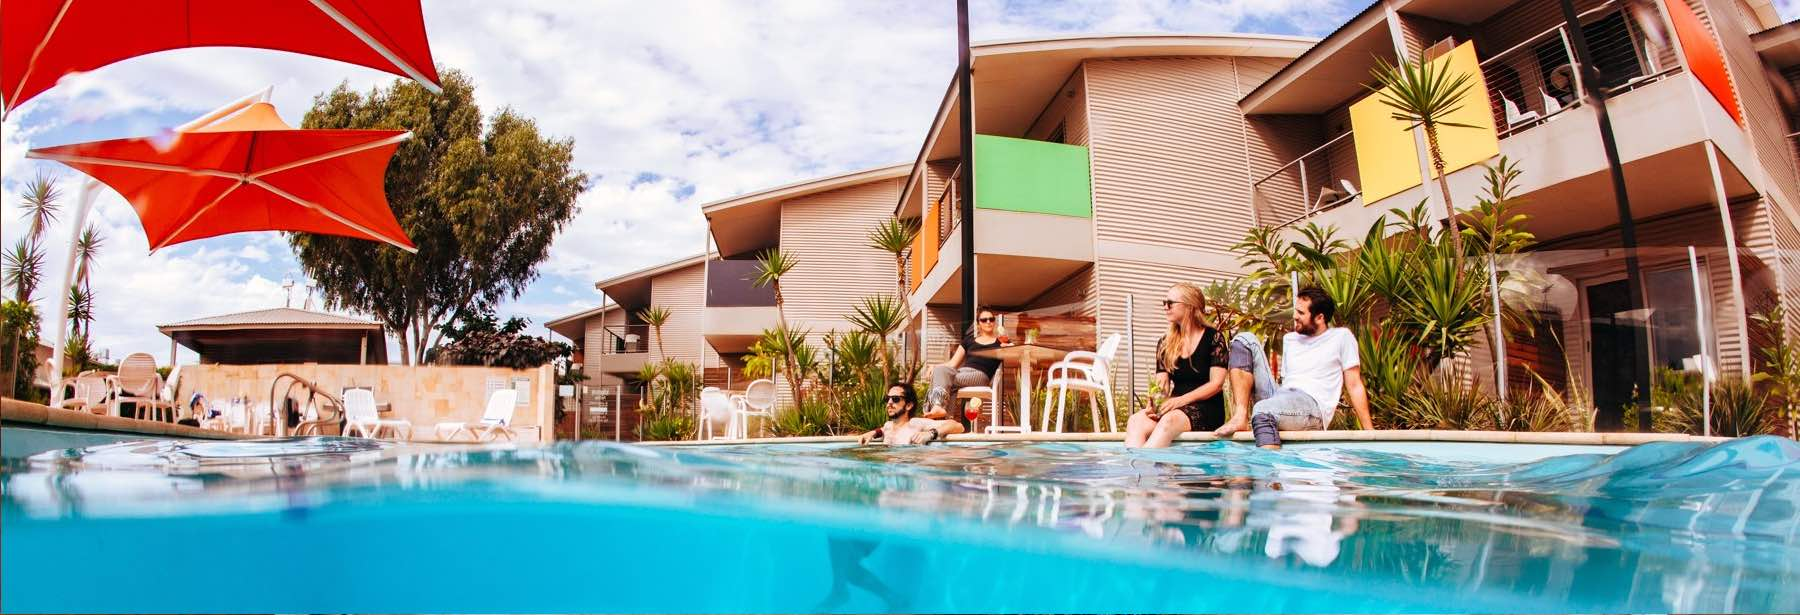 hotel with pool in onslow WA